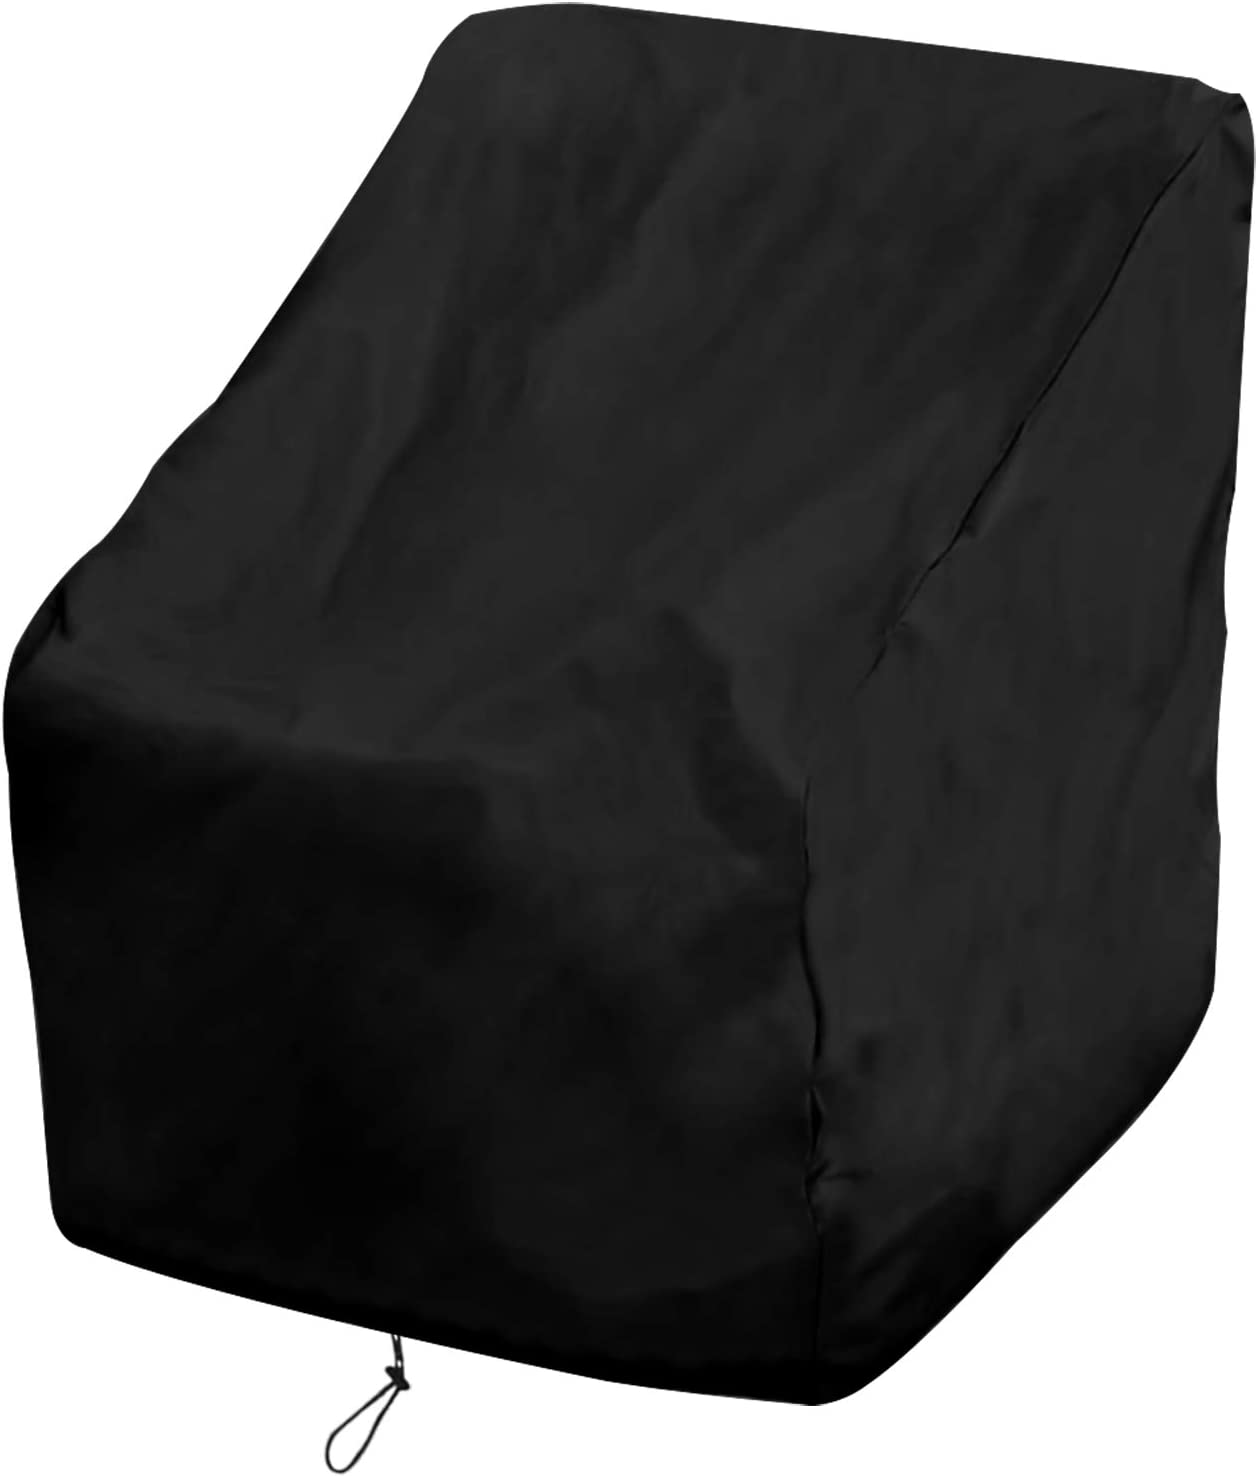 Boat Center Console Cover,420D Marine Grade Waterproof Oxford Cloth Black Marine Main Engine Cover,Sun Protection Center Console Cover,Marine Console Cover